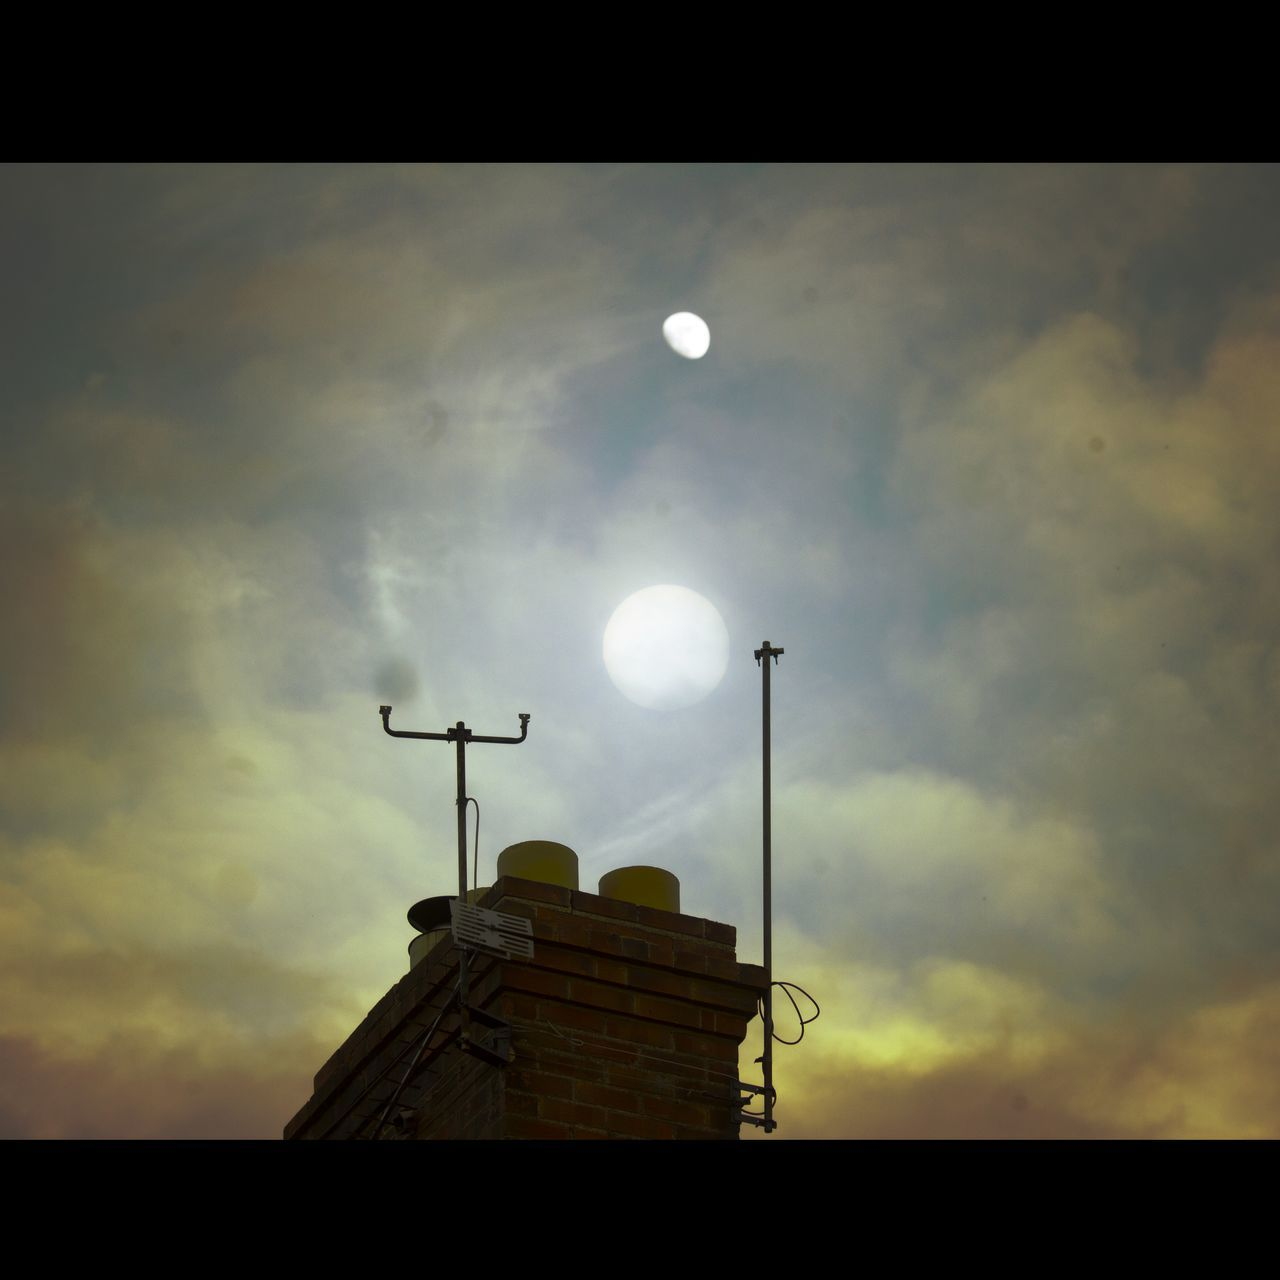 Sky No People Moon Nature Built Structure Antenna - Aerial Cloud - Sky Outdoors Sunset Television Aerial Nostalgia Dreamlike Edit Science Fiction Astronomy Composite Dream Tranquil Scene Landscape Art Occult Retouch Scifi Memory Nature